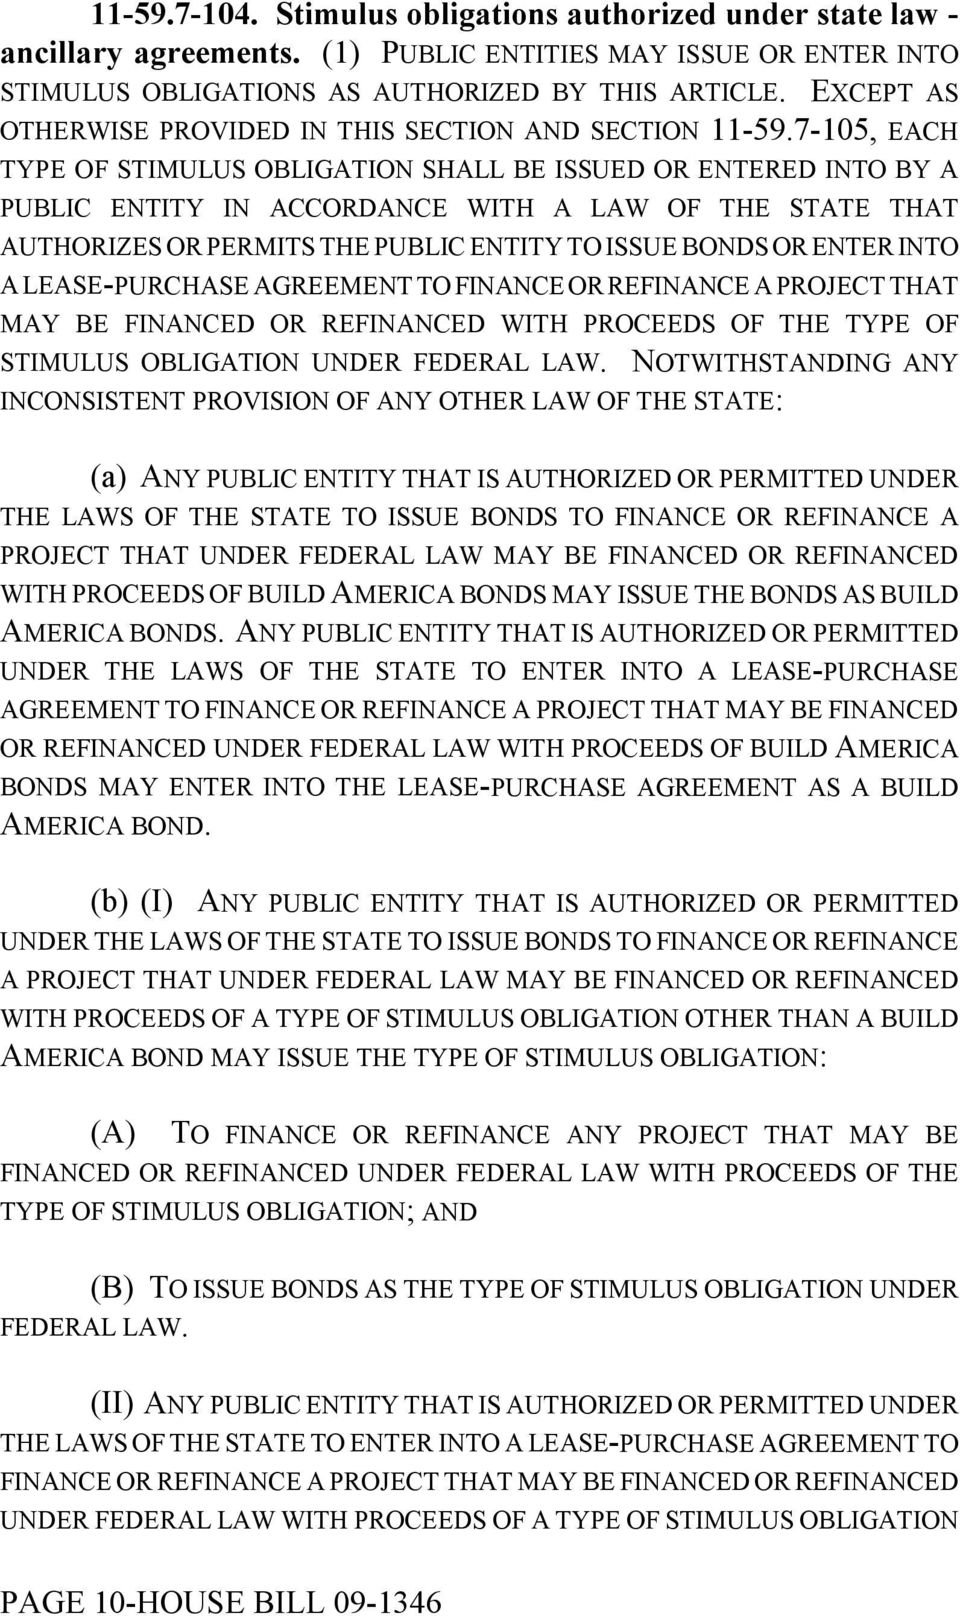 7-105, EACH TYPE OF STIMULUS OBLIGATION SHALL BE ISSUED OR ENTERED INTO BY A PUBLIC ENTITY IN ACCORDANCE WITH A LAW OF THE STATE THAT AUTHORIZES OR PERMITS THE PUBLIC ENTITY TO ISSUE BONDS OR ENTER